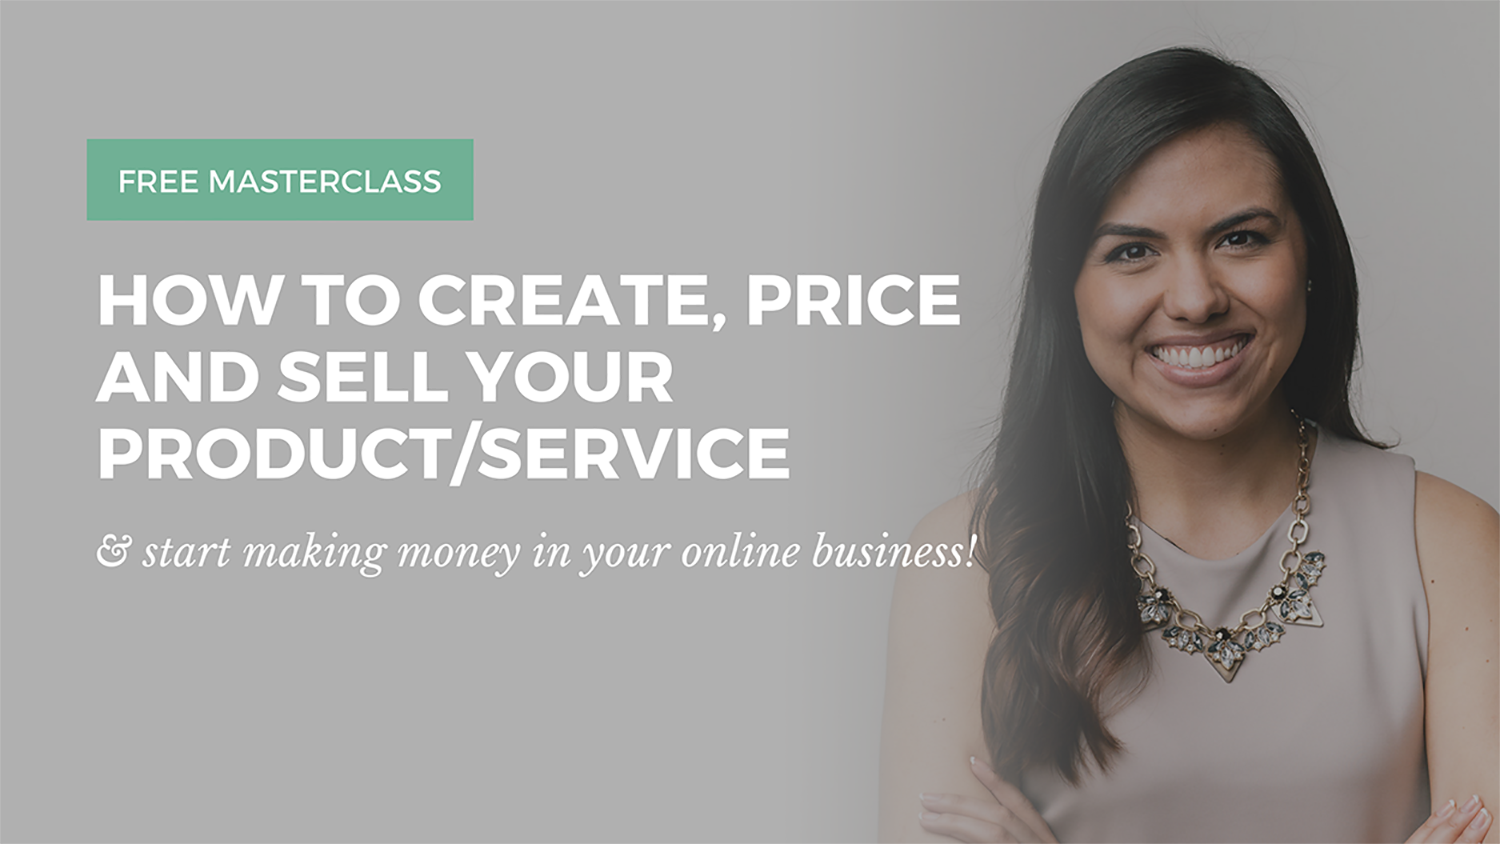 free masterclass create price sell fb event image.png